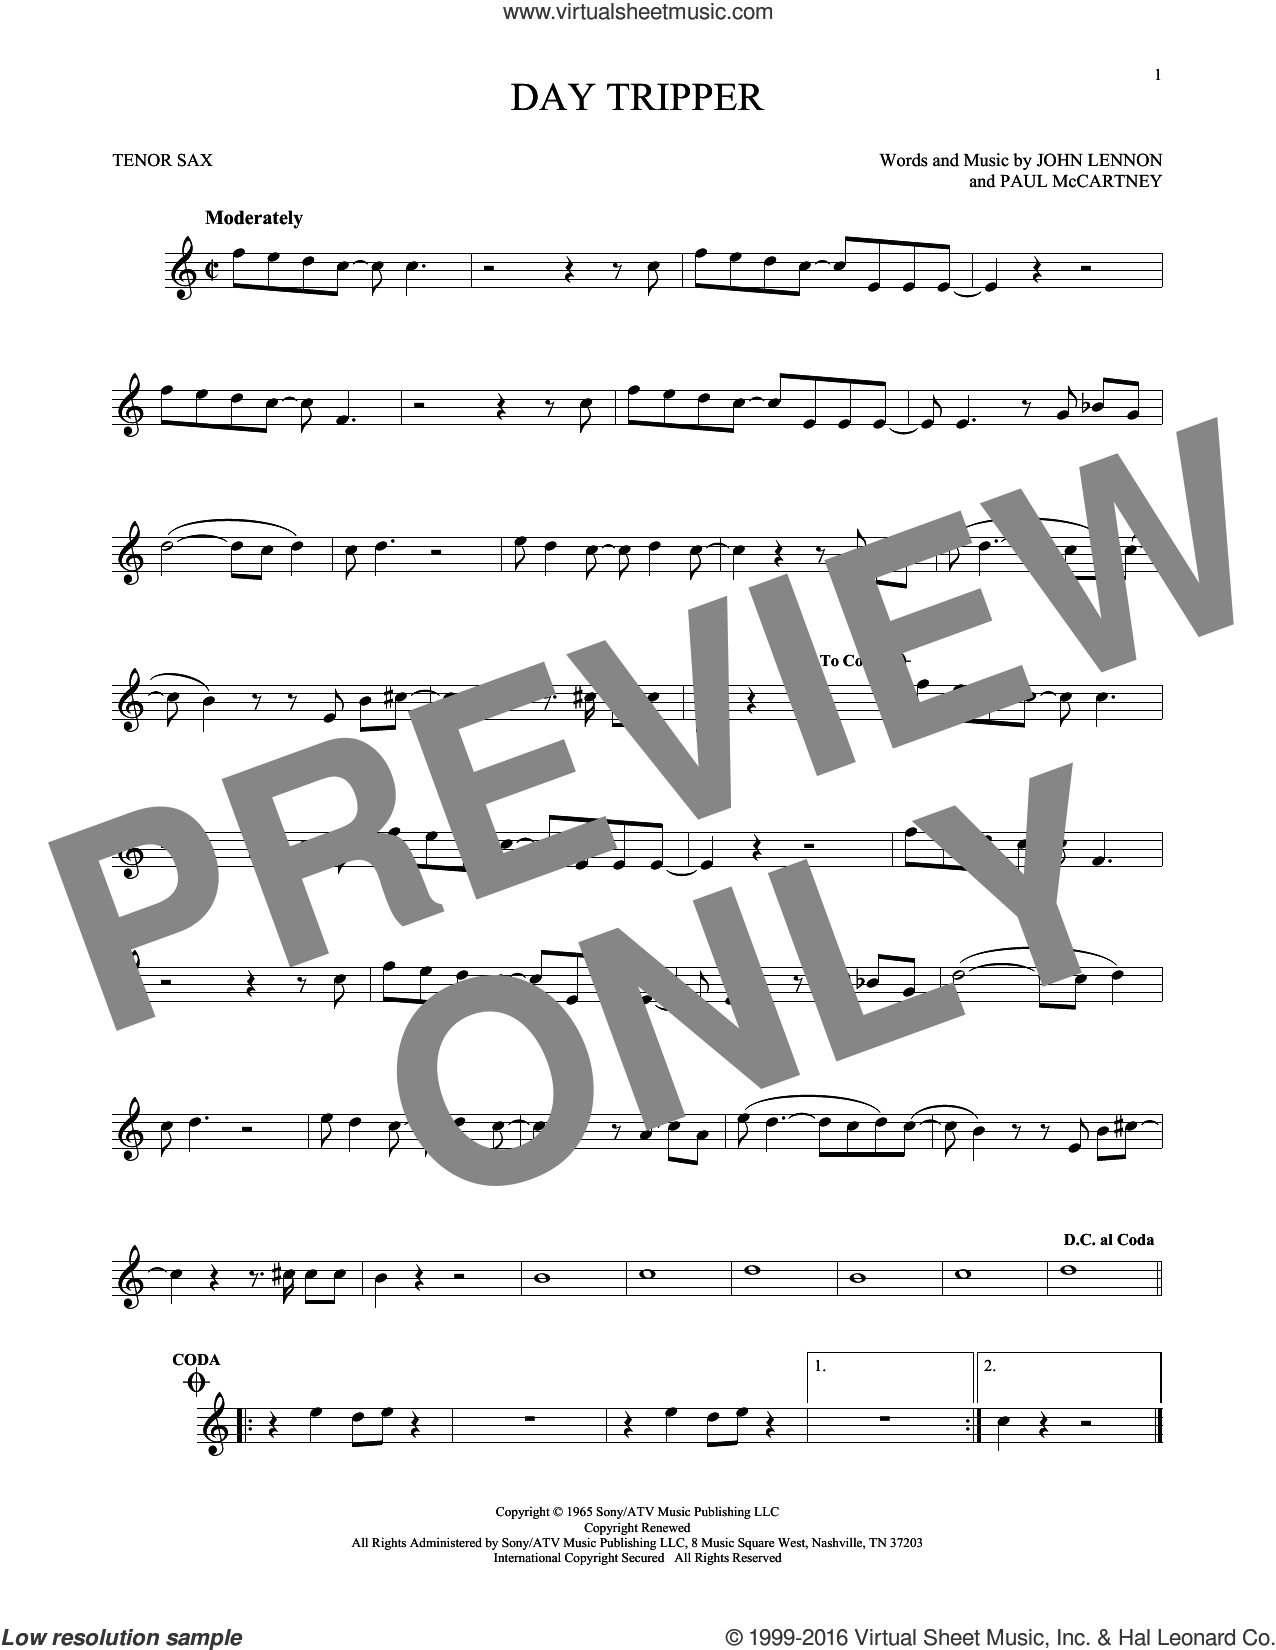 Day Tripper sheet music for tenor saxophone solo by The Beatles, John Lennon and Paul McCartney, intermediate skill level